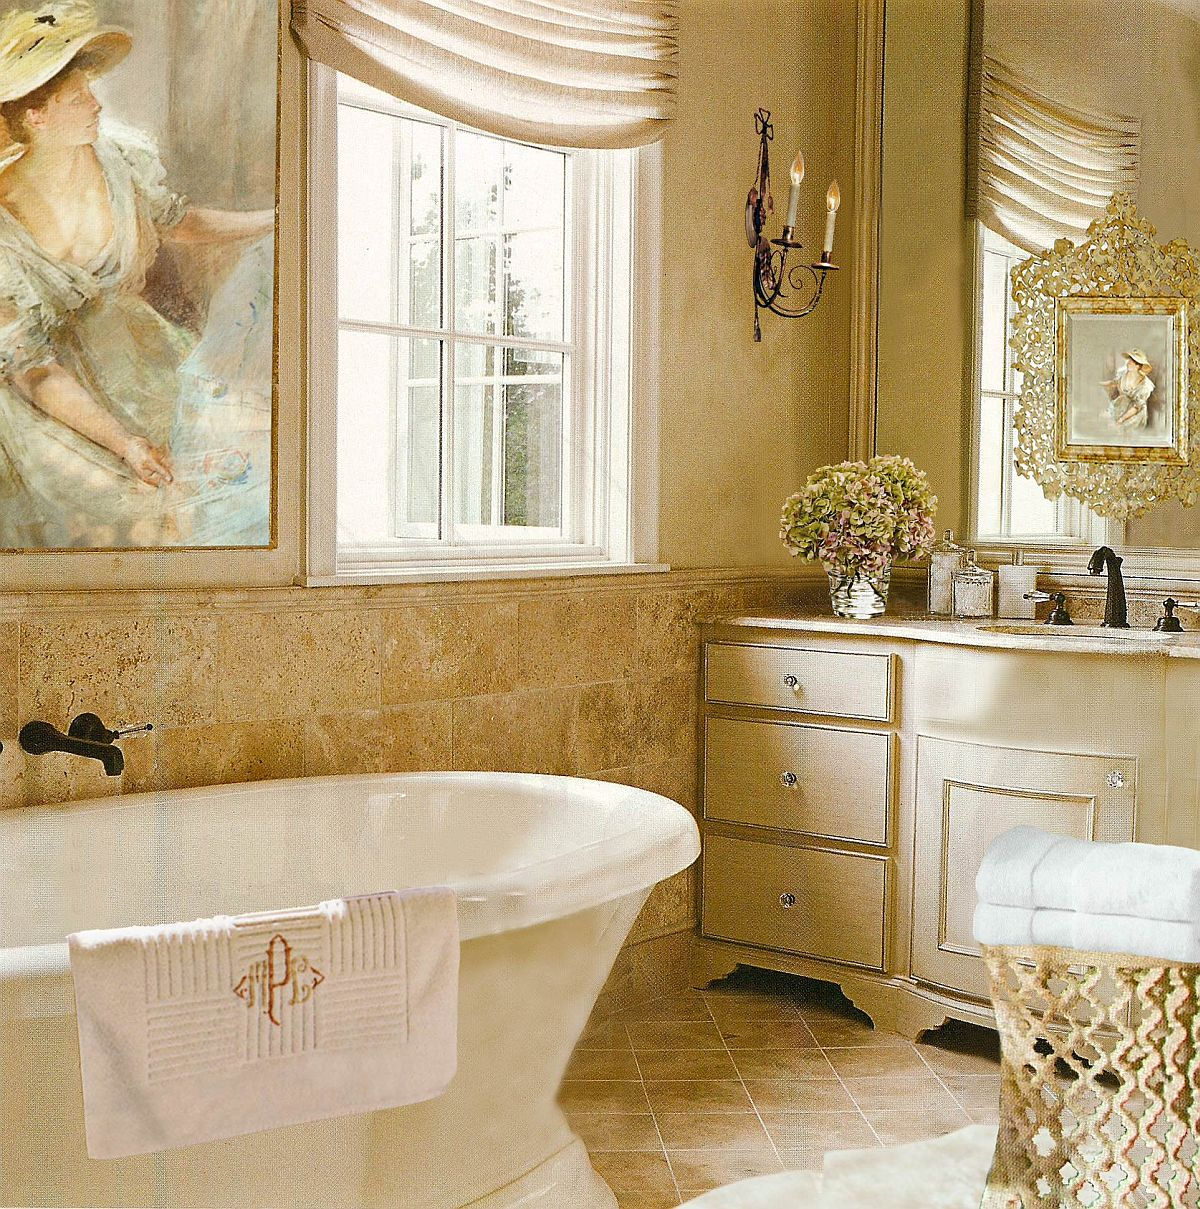 Large-wall-art-piece-and-limestone-bring-old-world-English-charm-to-this-Miami-Bathroom-17059